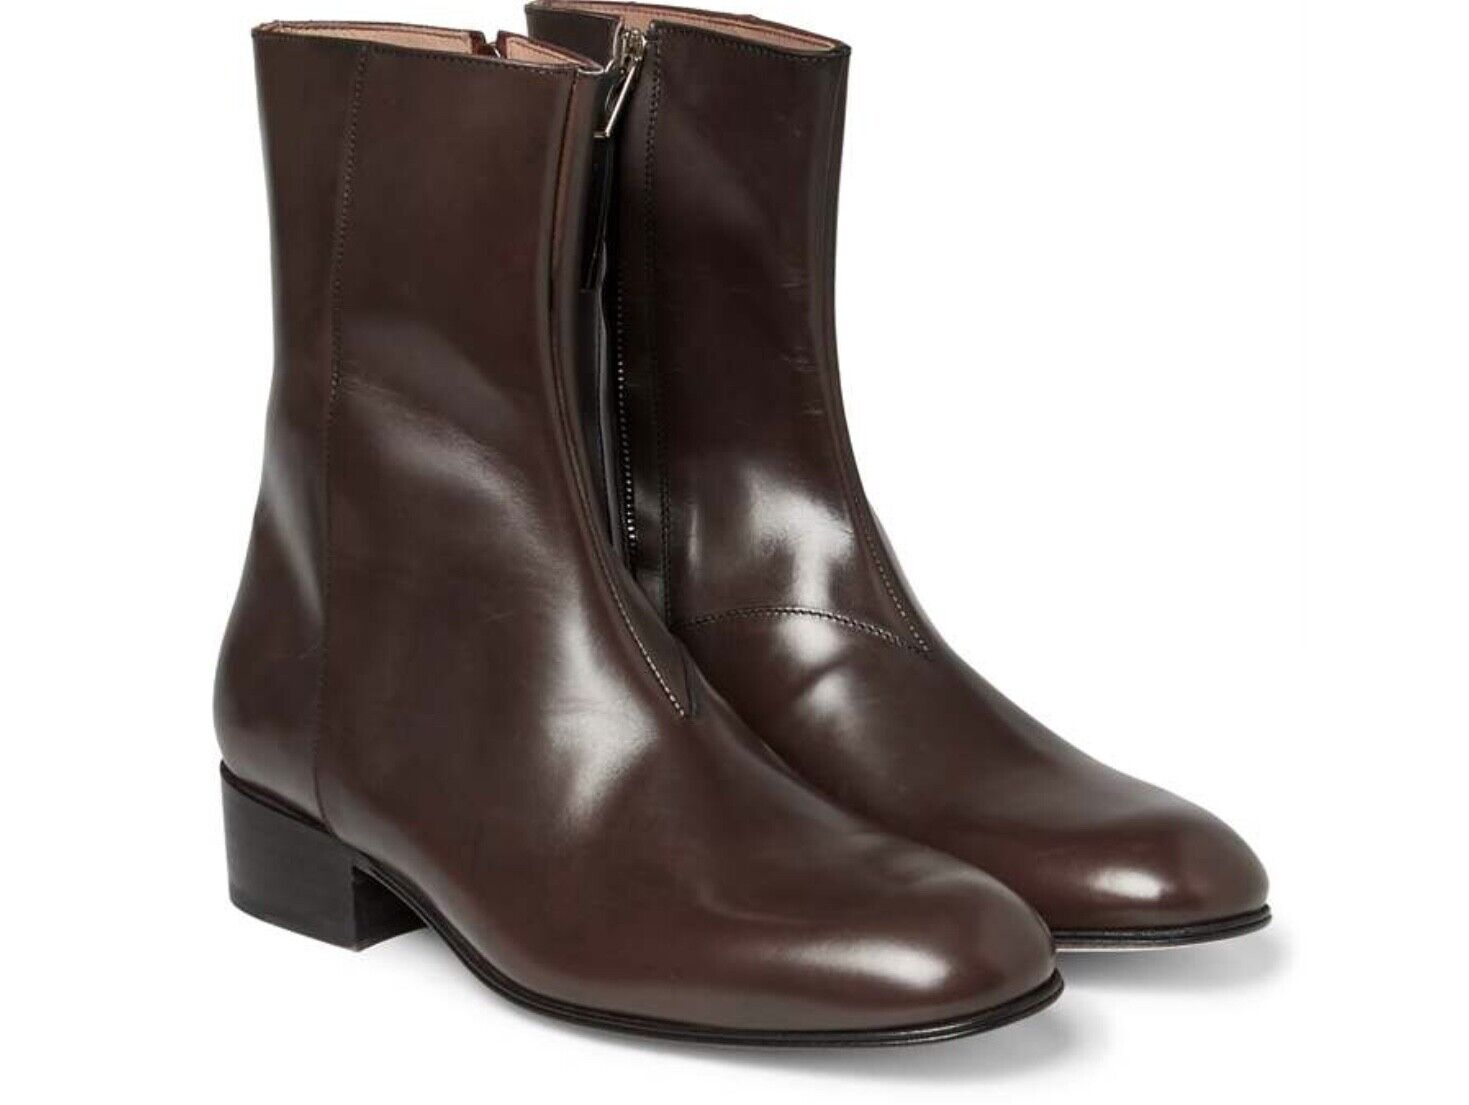 NEW Paul Smith BARDO BROWN Leather Boot  SIZE 6